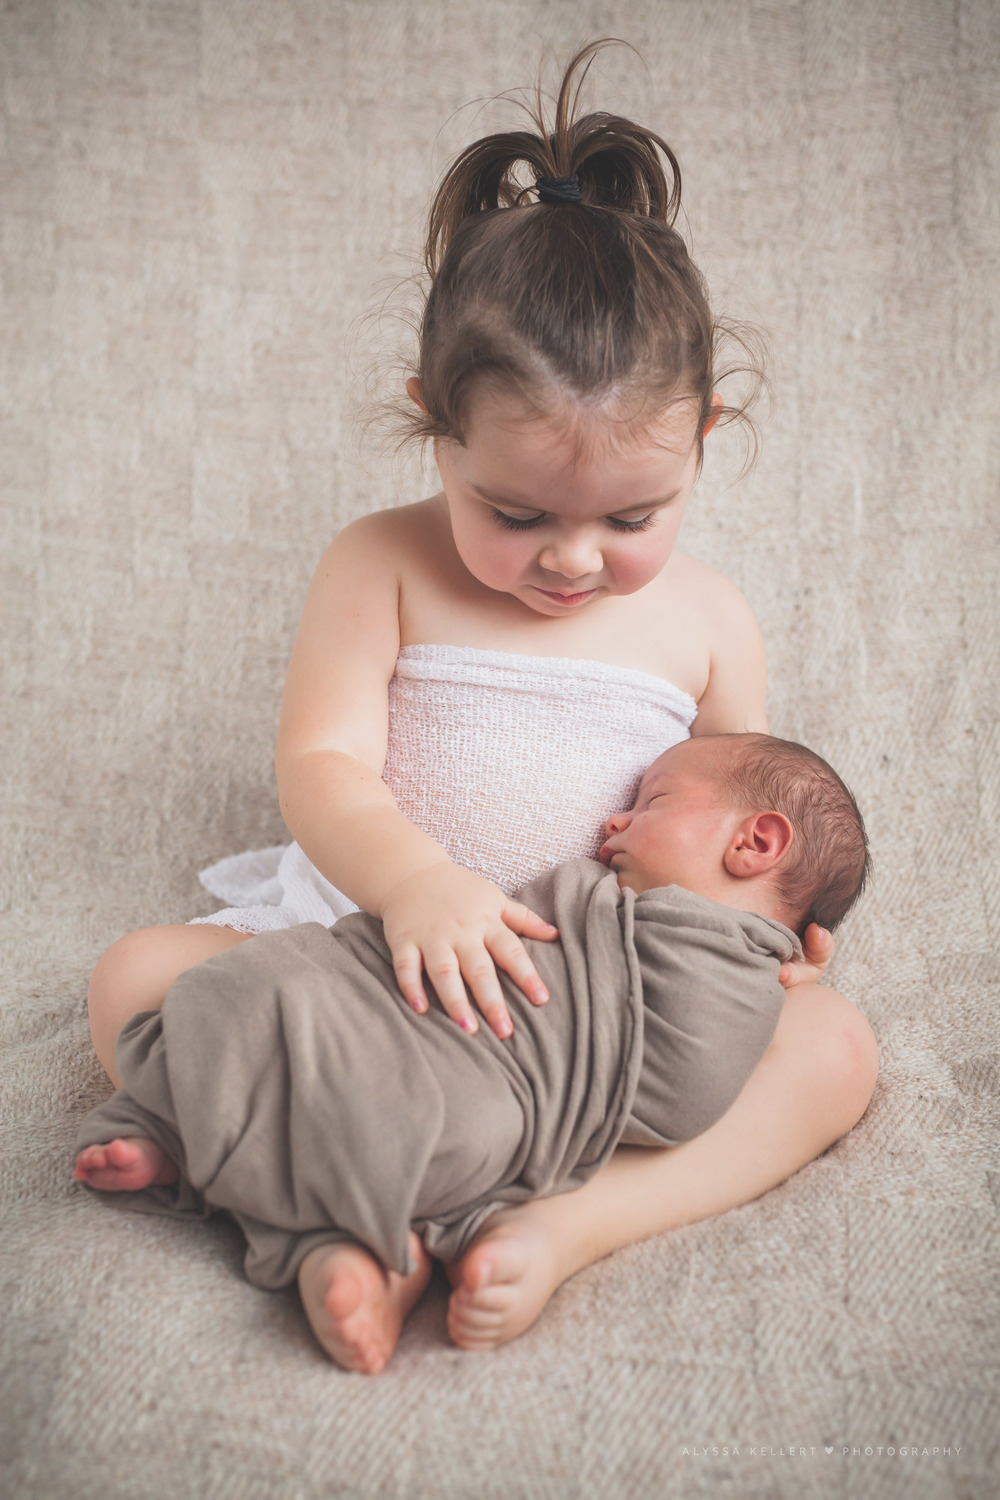 baby-siblings-photograph-vancouver-coquitlam-bc-brother-sister